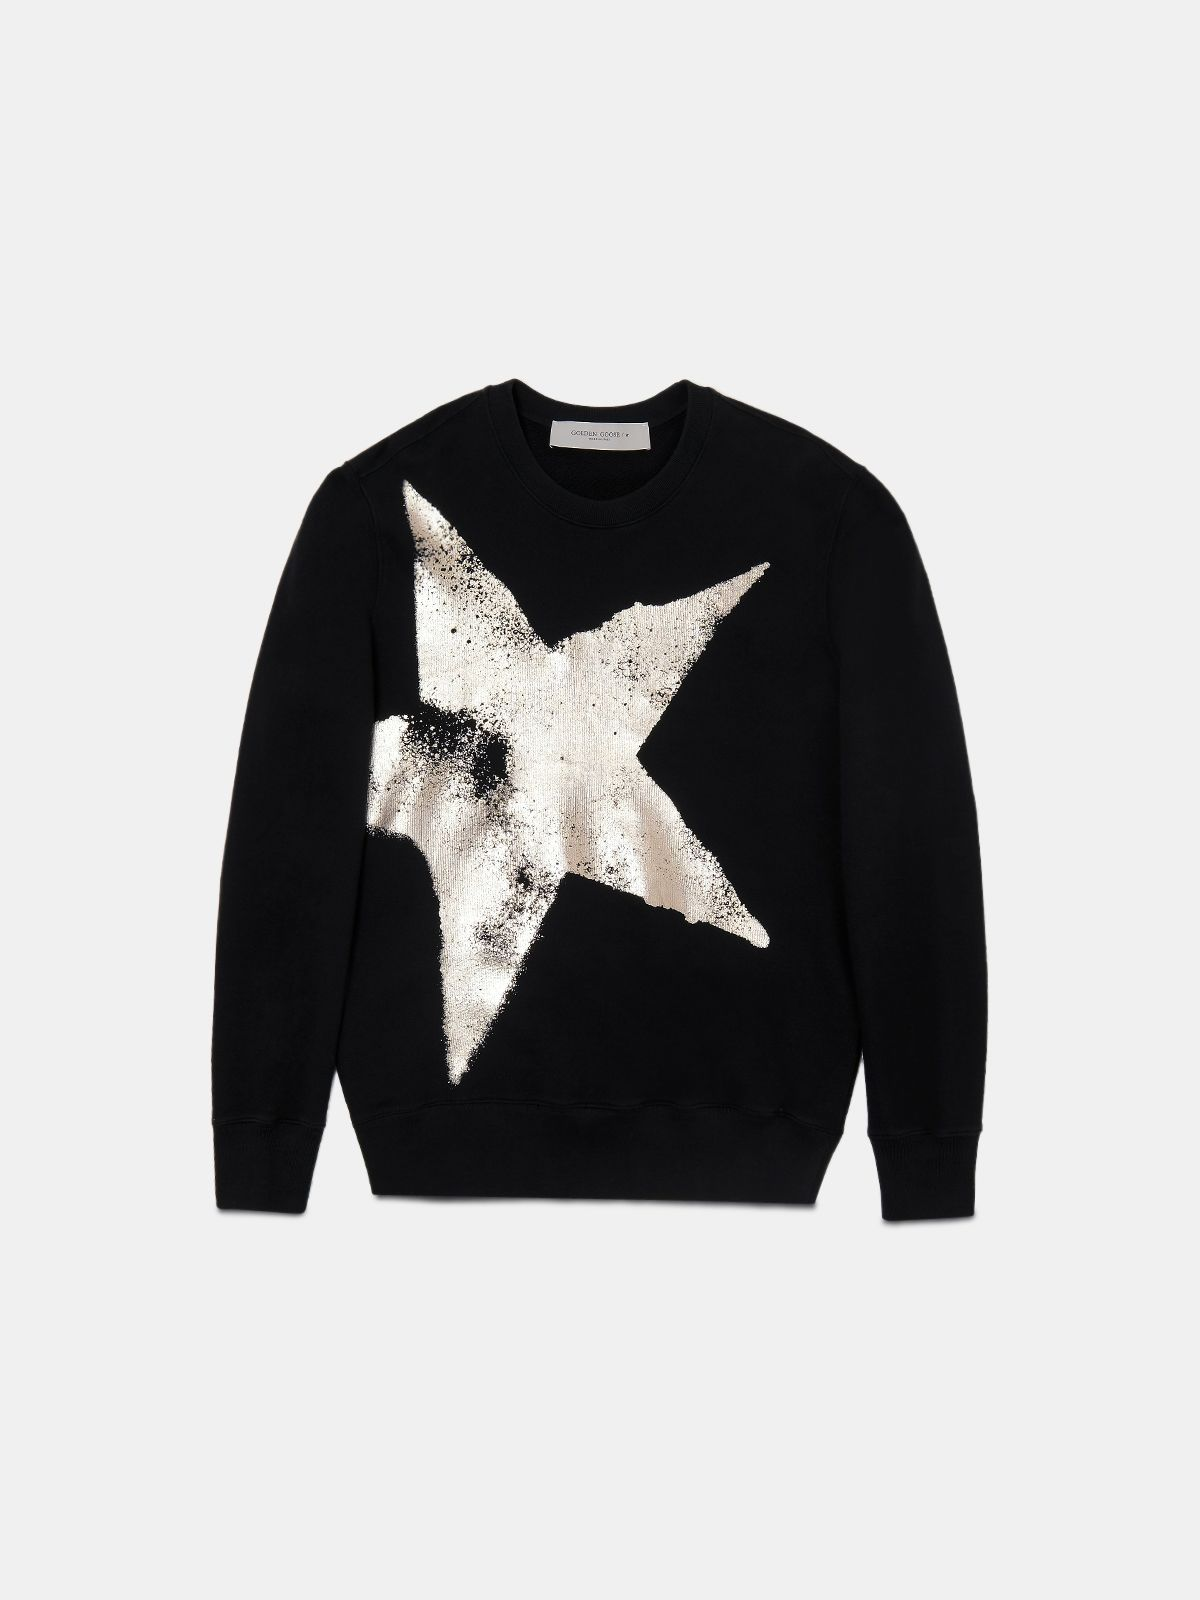 Archibald sweatshirt with gold star print